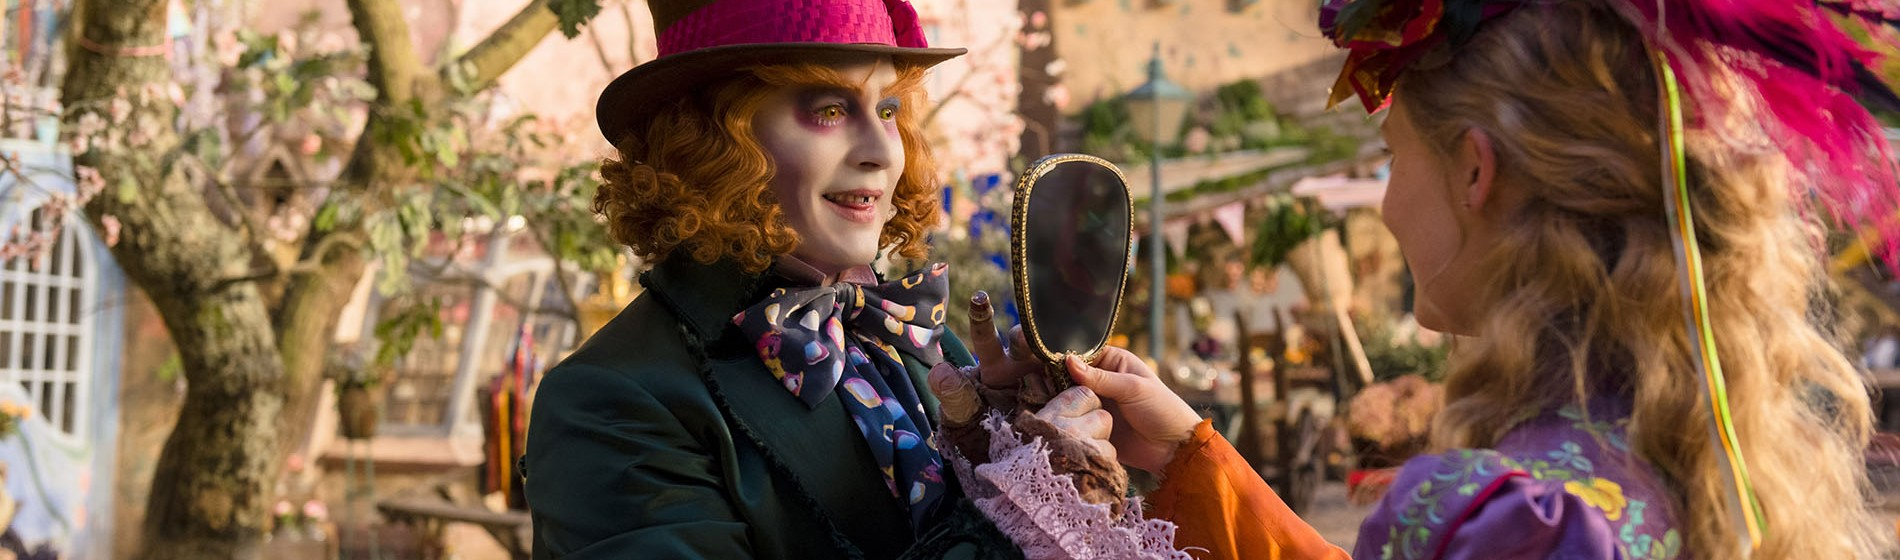 Alice-Through-The-Looking-Glass-Featured-1900x560-1464289798